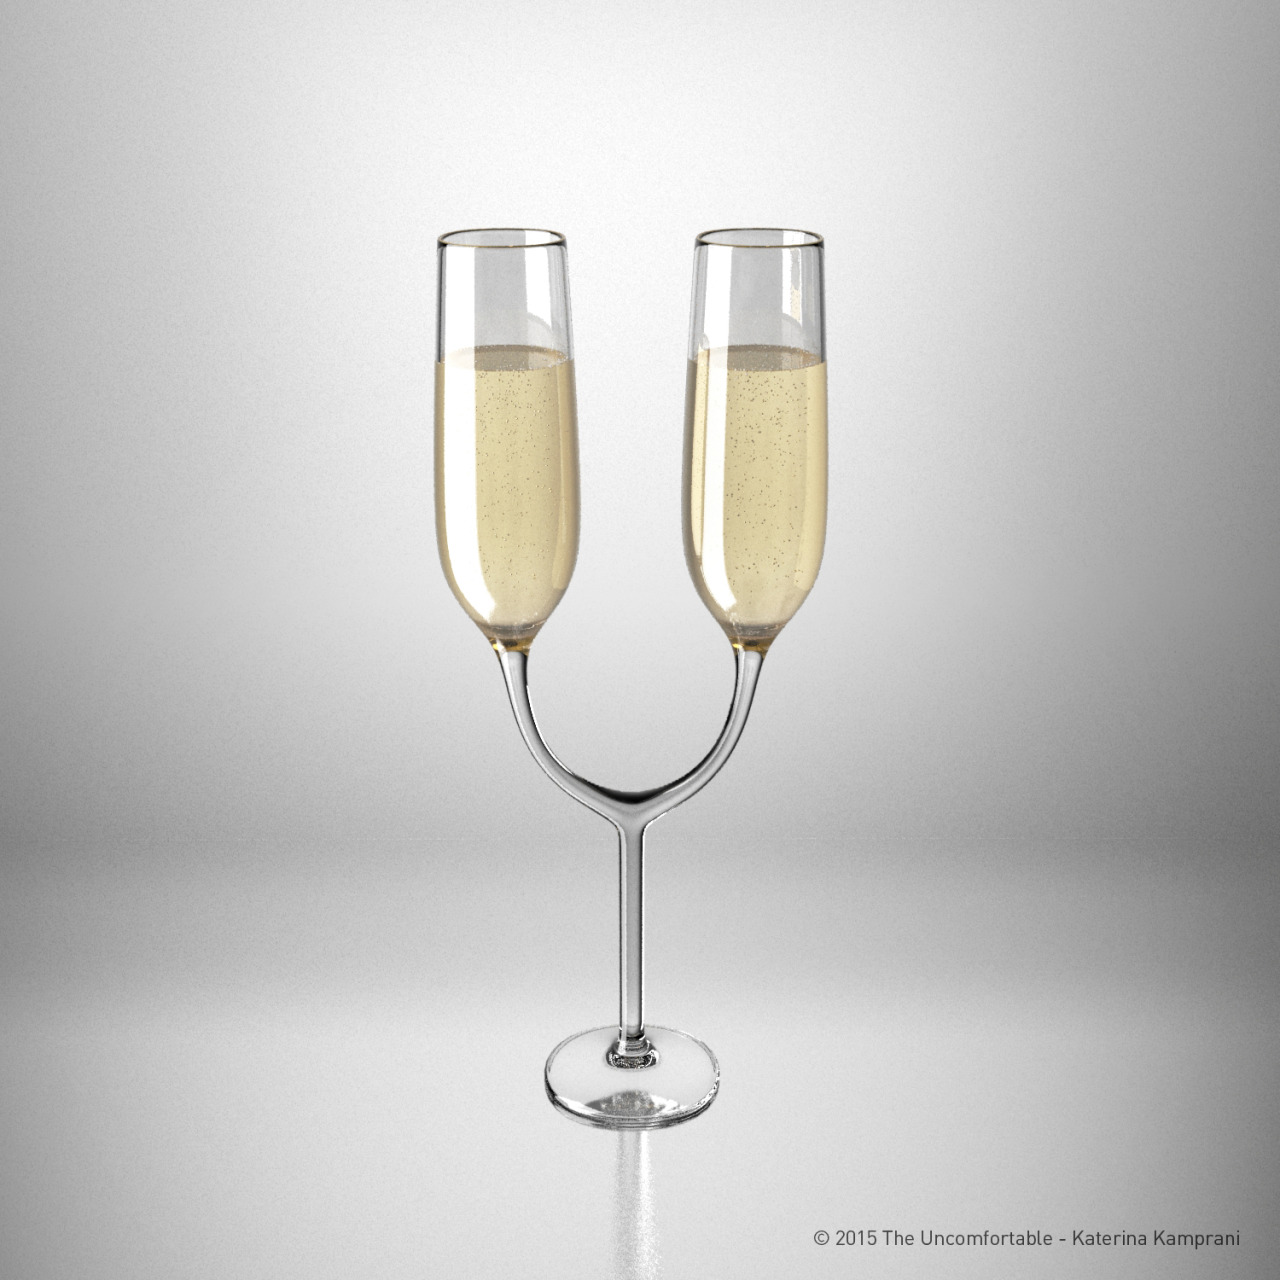 Twin champagne glass © 2016 Katerina Kamprani - all rights reserved